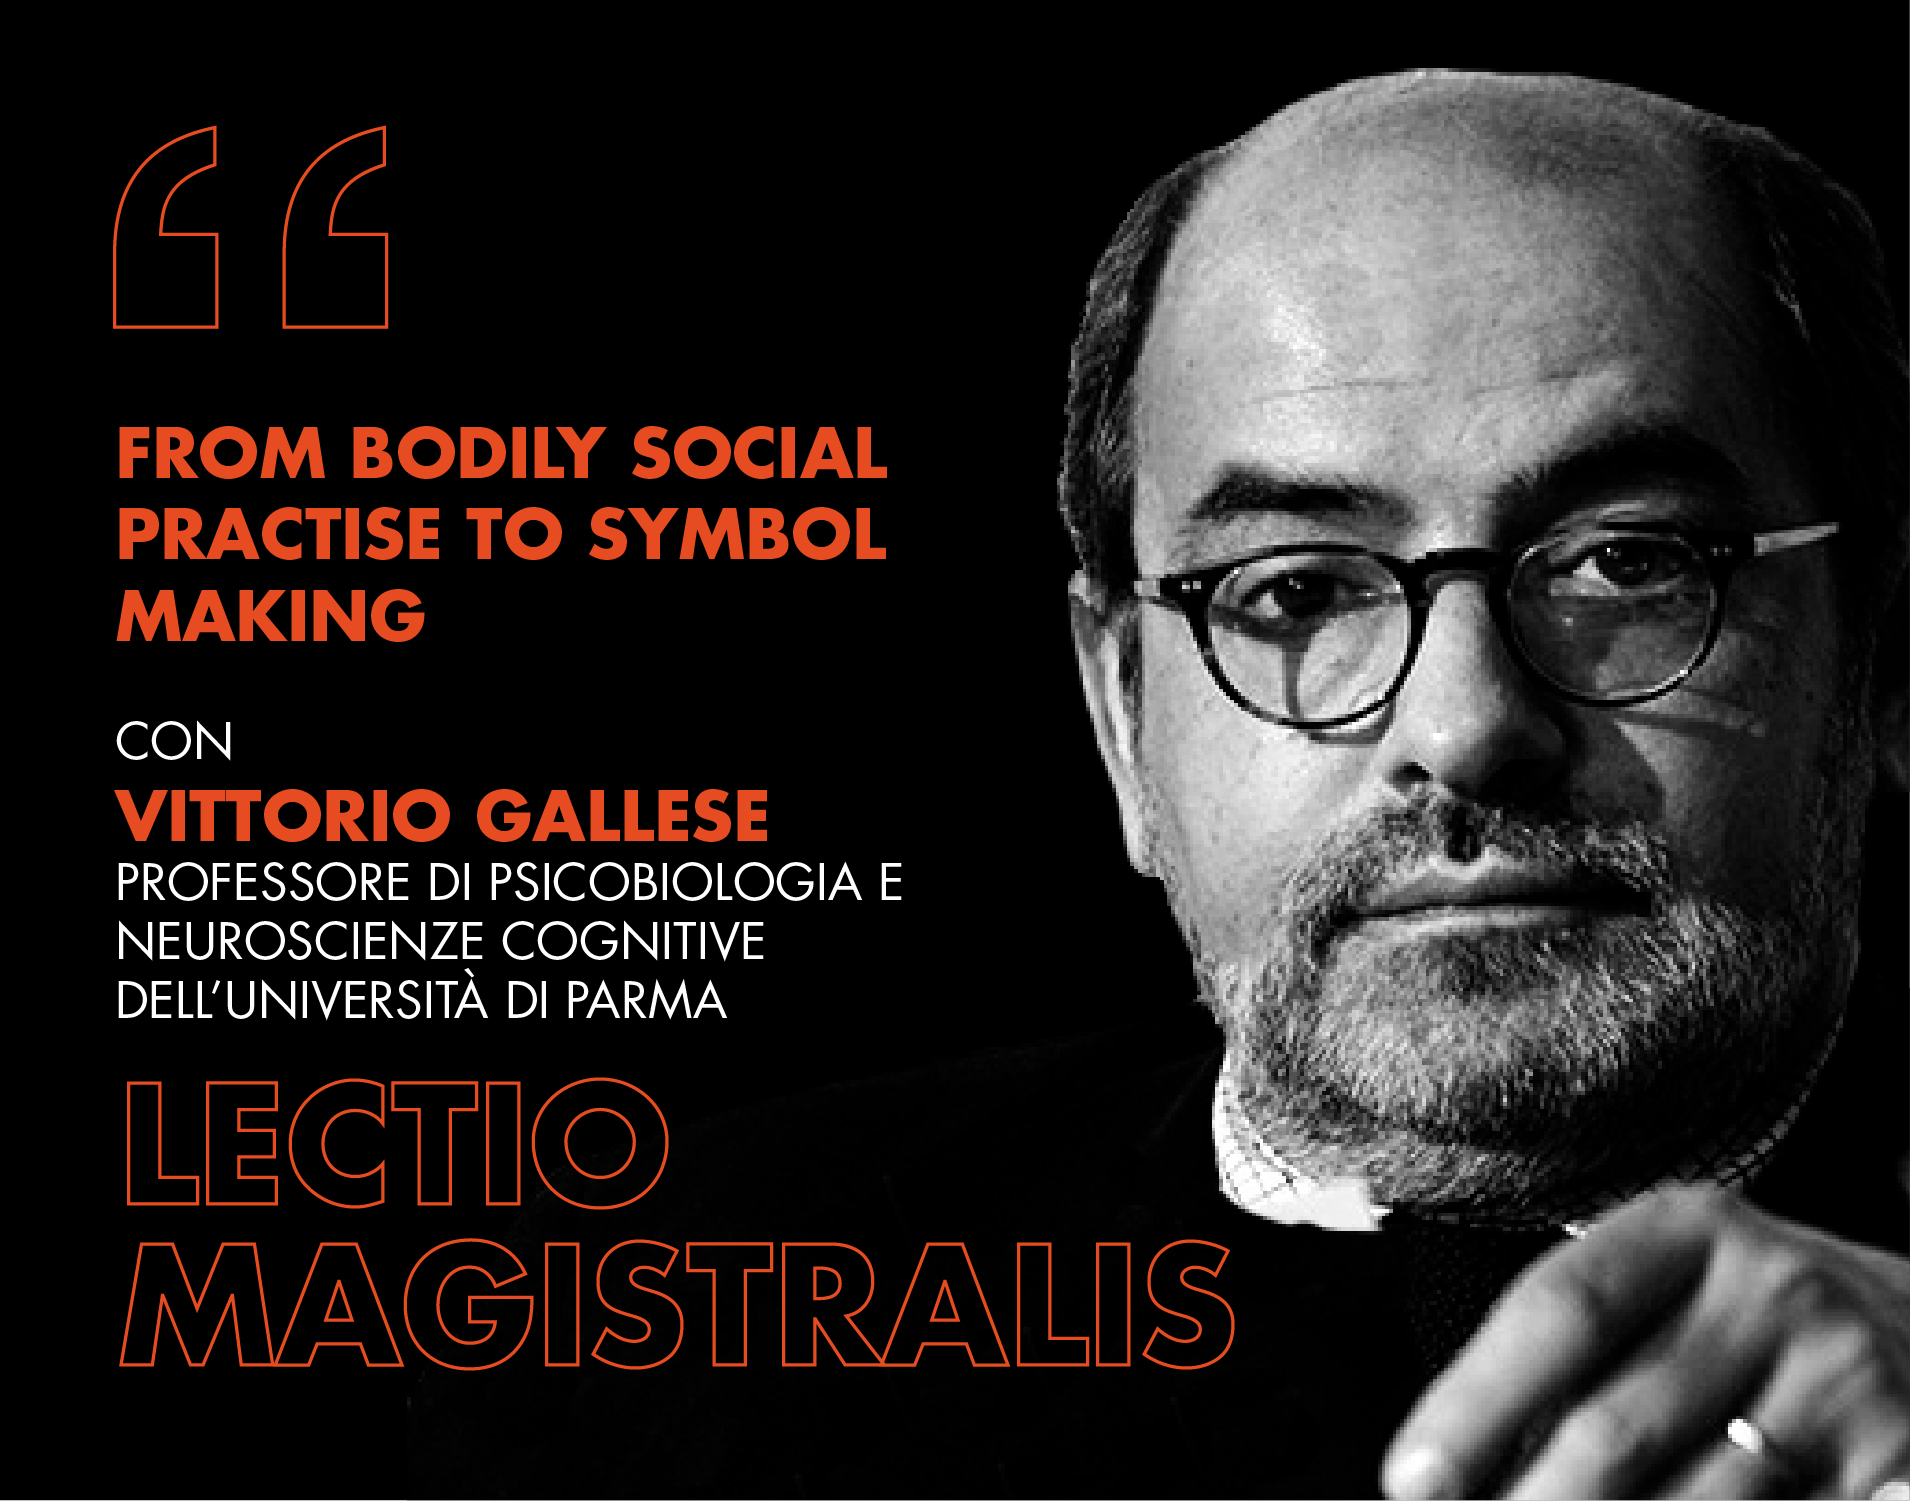 From bodily social practise to symbol making - Lectio Magistralis Gallese